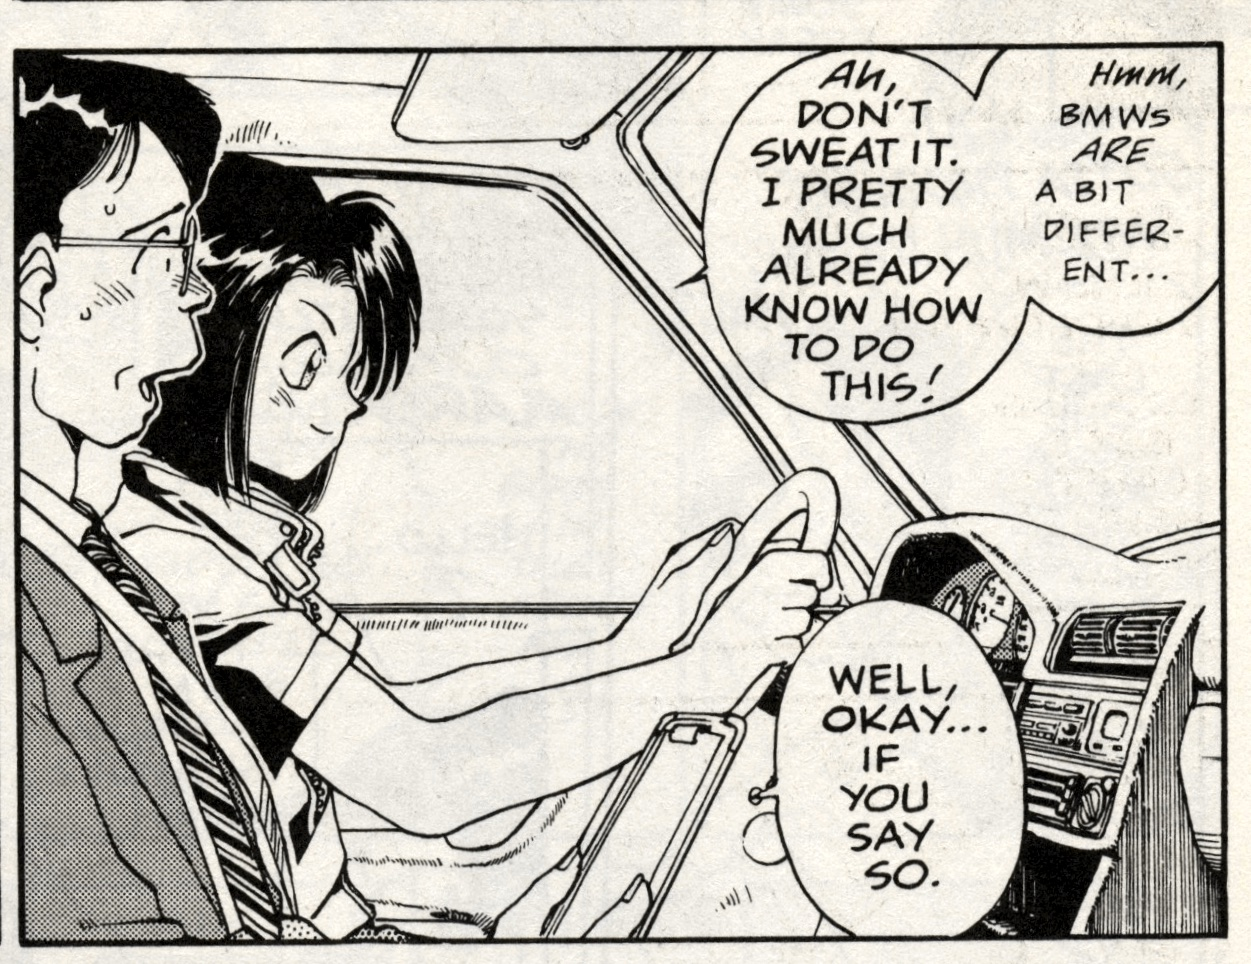 youre-under-arrest-manga-1-page-22-bmw-3-series-01